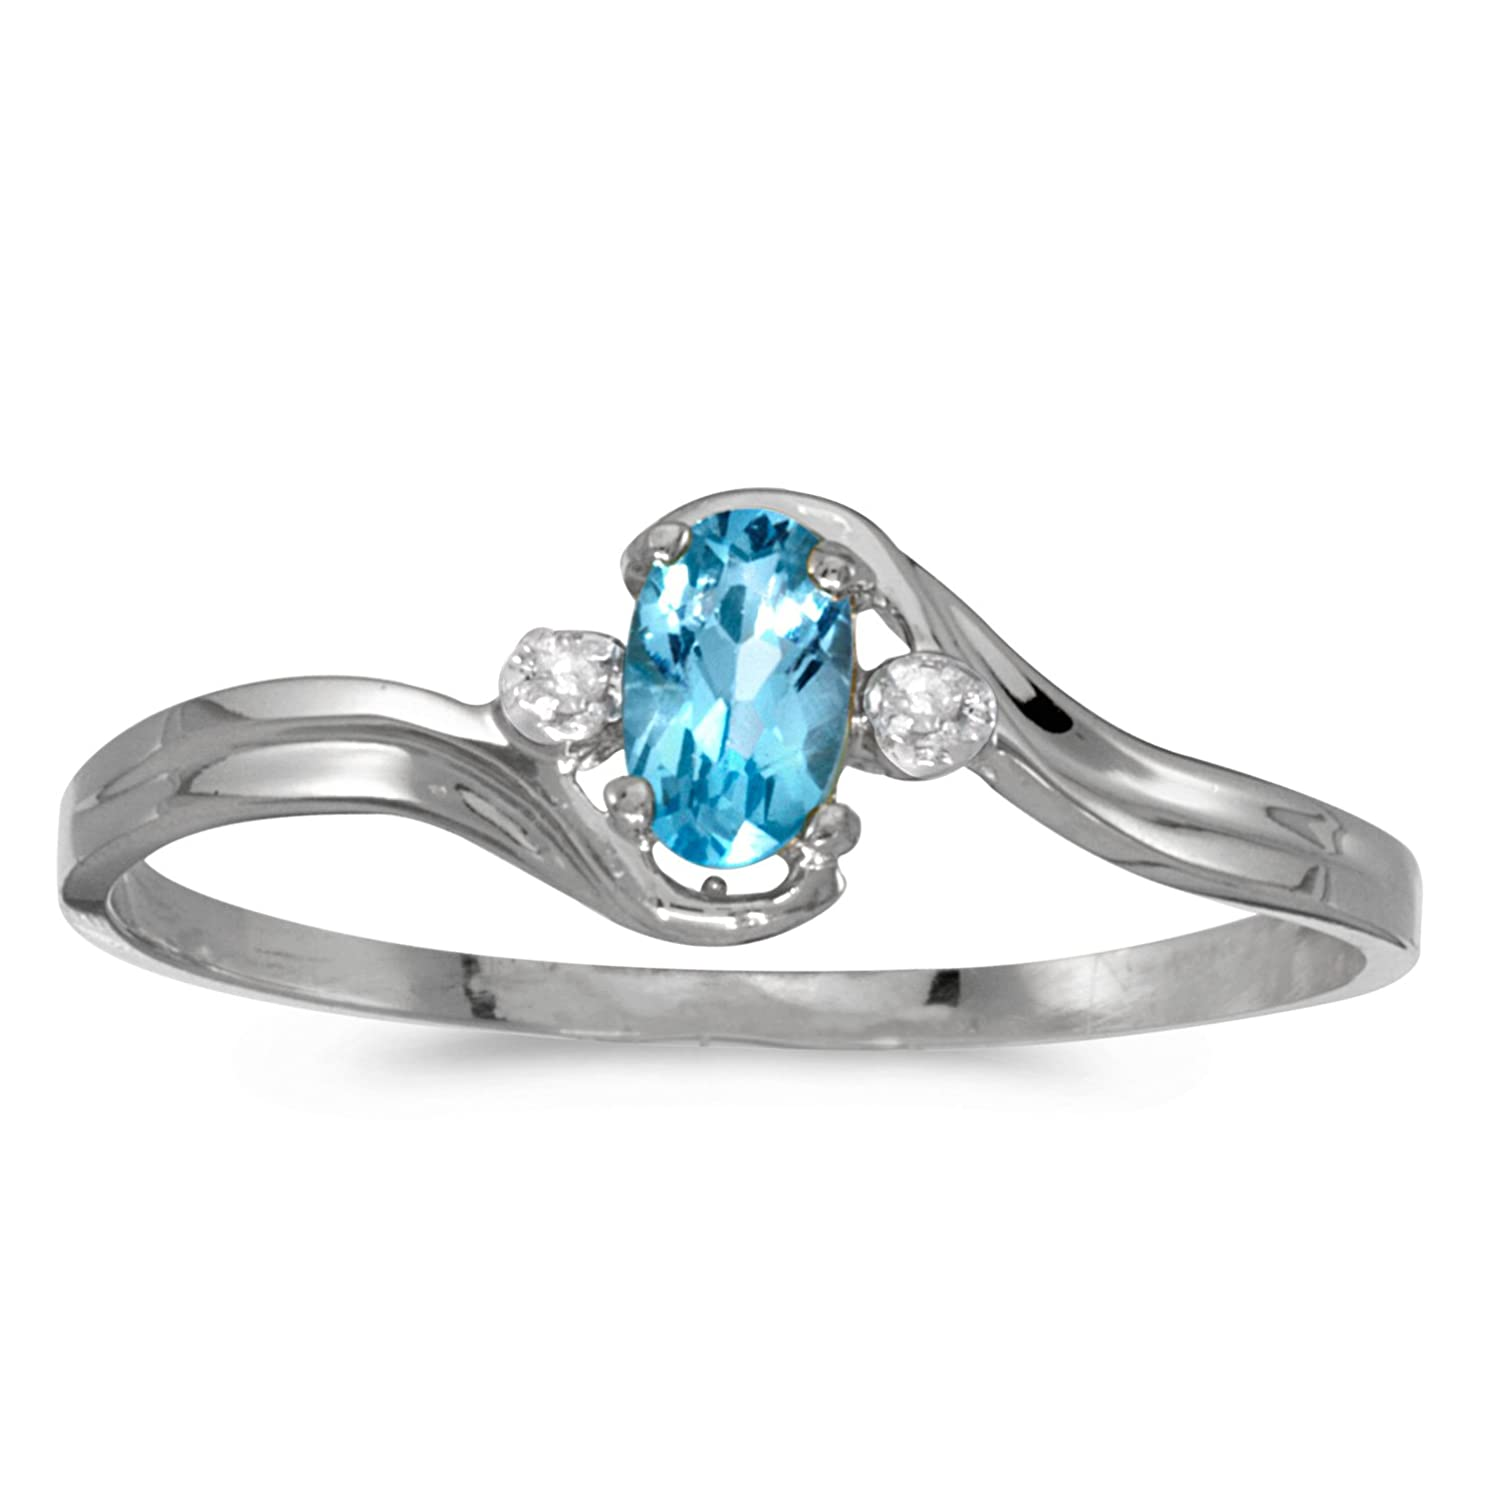 ring rings blue topaz december birthstone silver moorish marquise stone jewelry wedding rexes